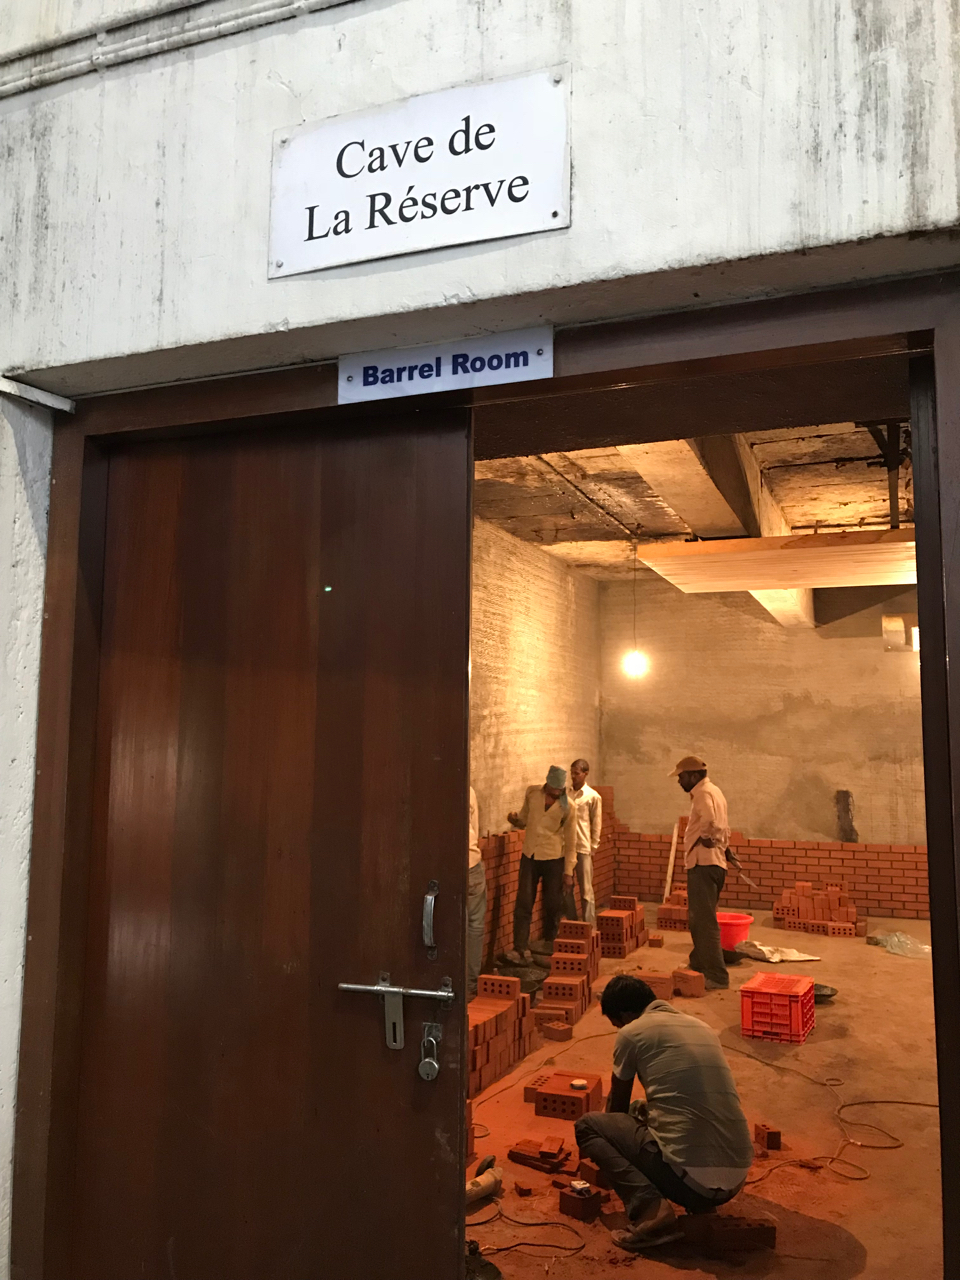 Like so much of India, Grover Zampa's barrel room is under construction.